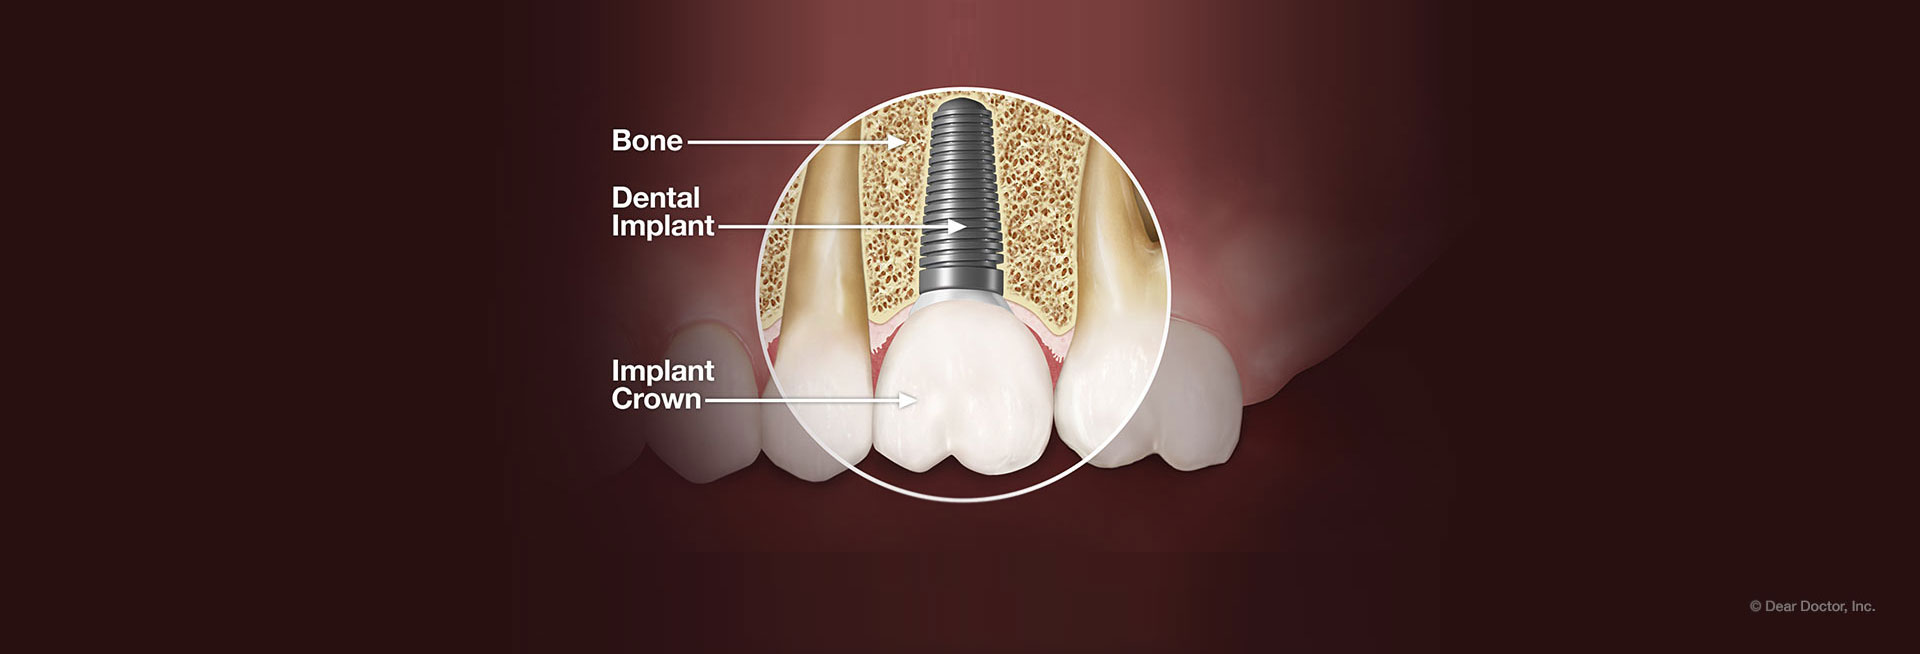 dear-doctor-dental-implant-banner2